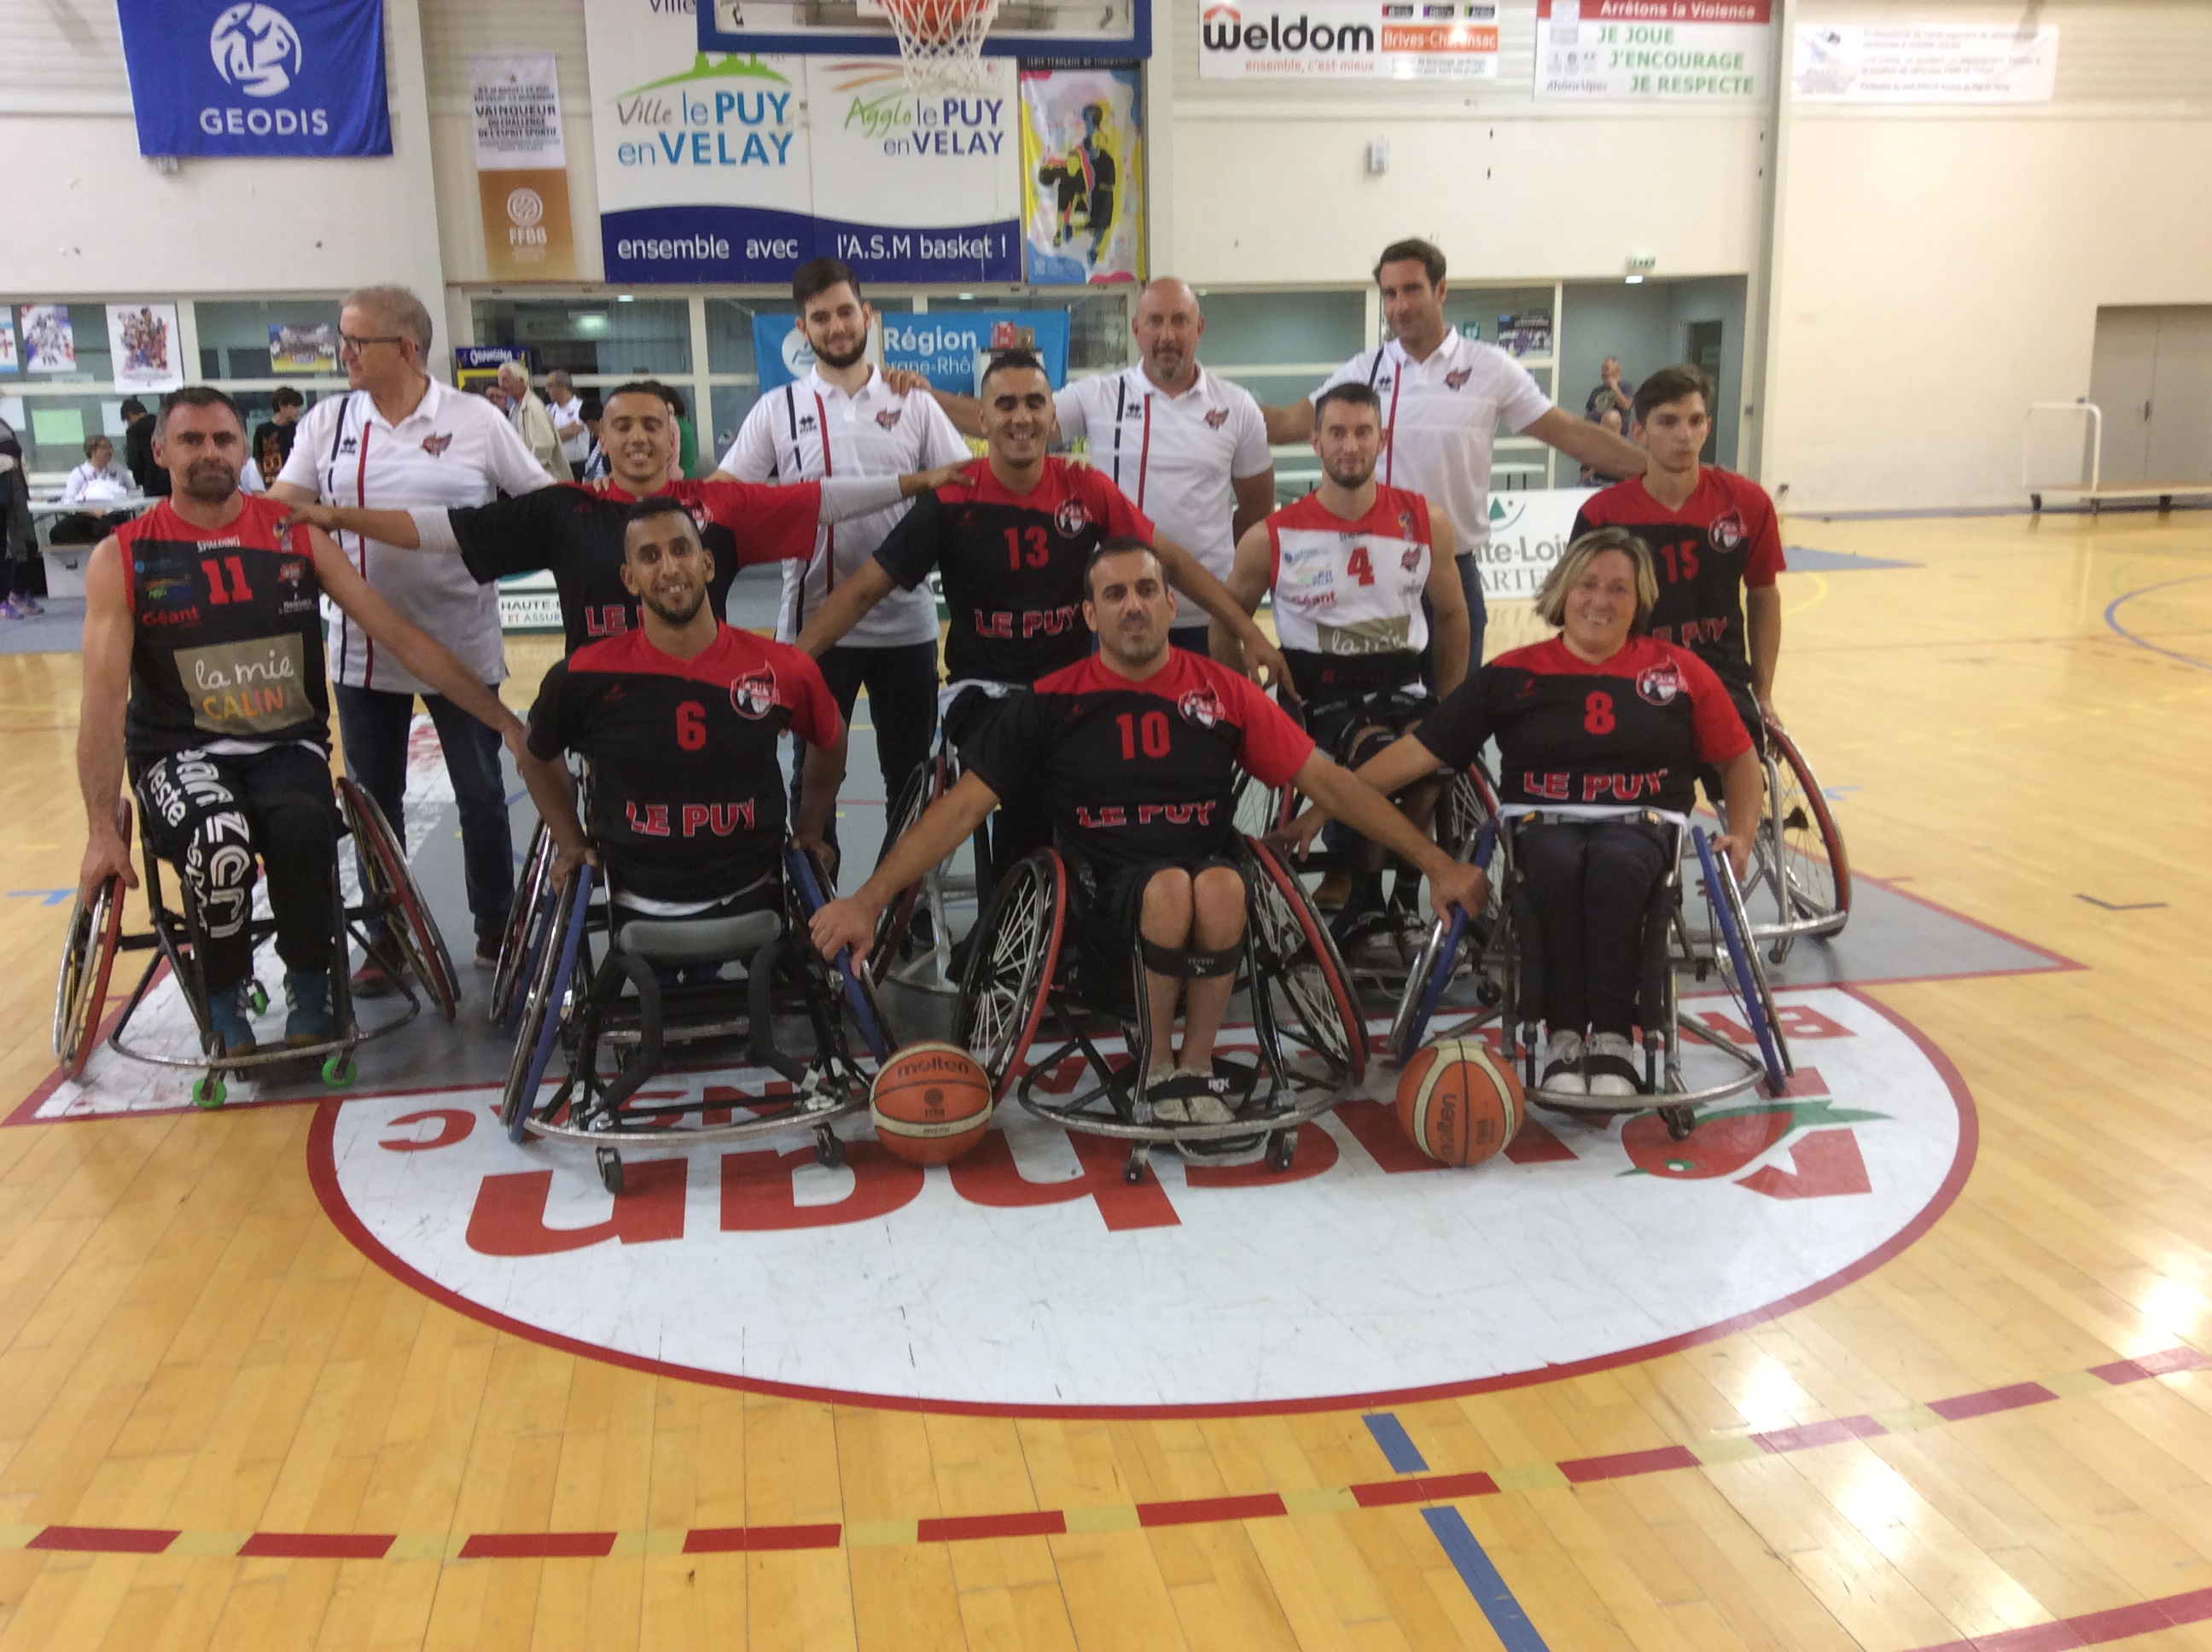 handi basket les aigles du velay-lannion avant match 121019 20h